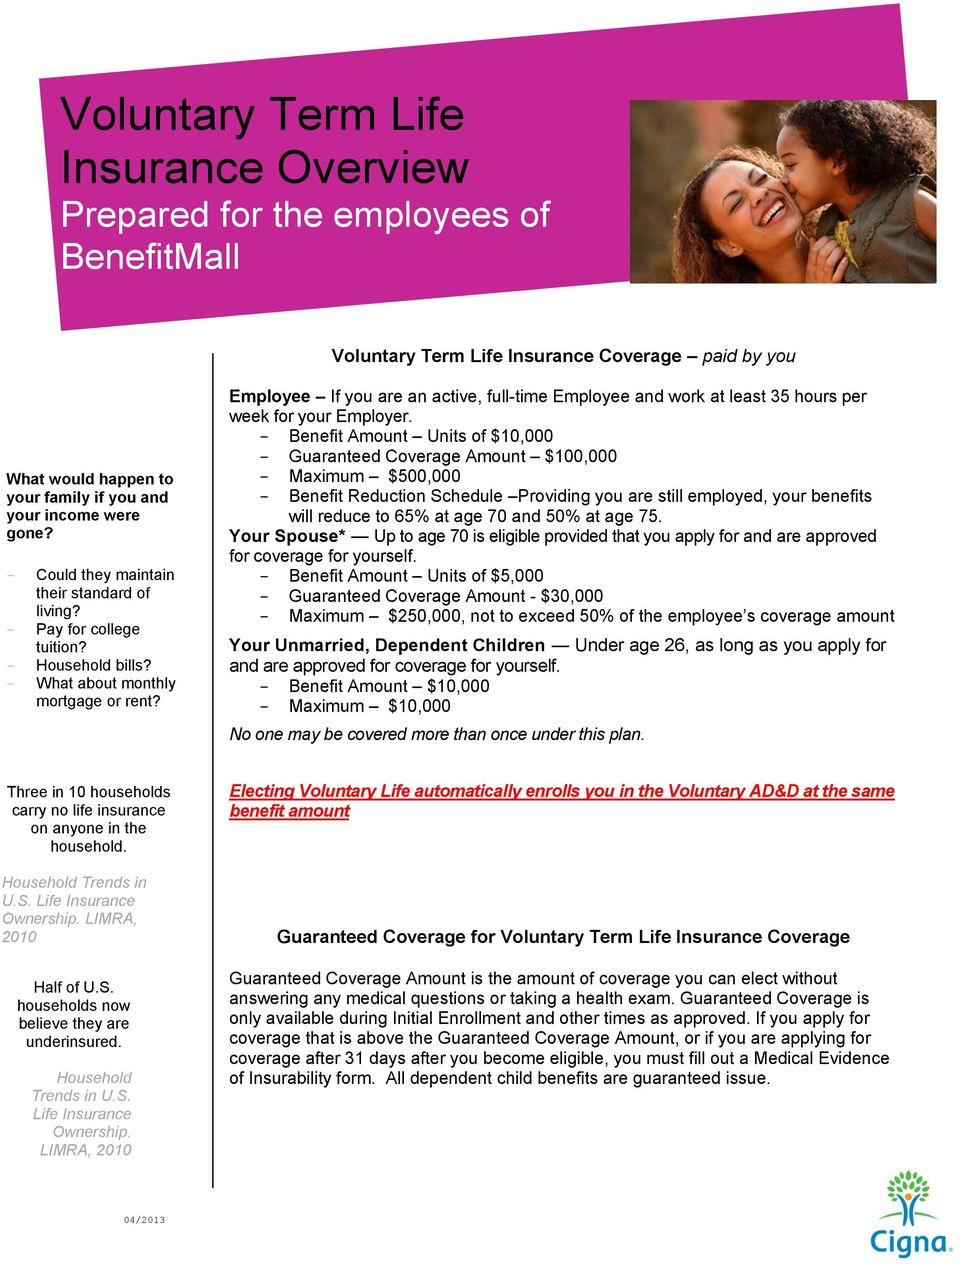 Employee If you are an active, full-time Employee and work at least 35 hours per week for your Employer.